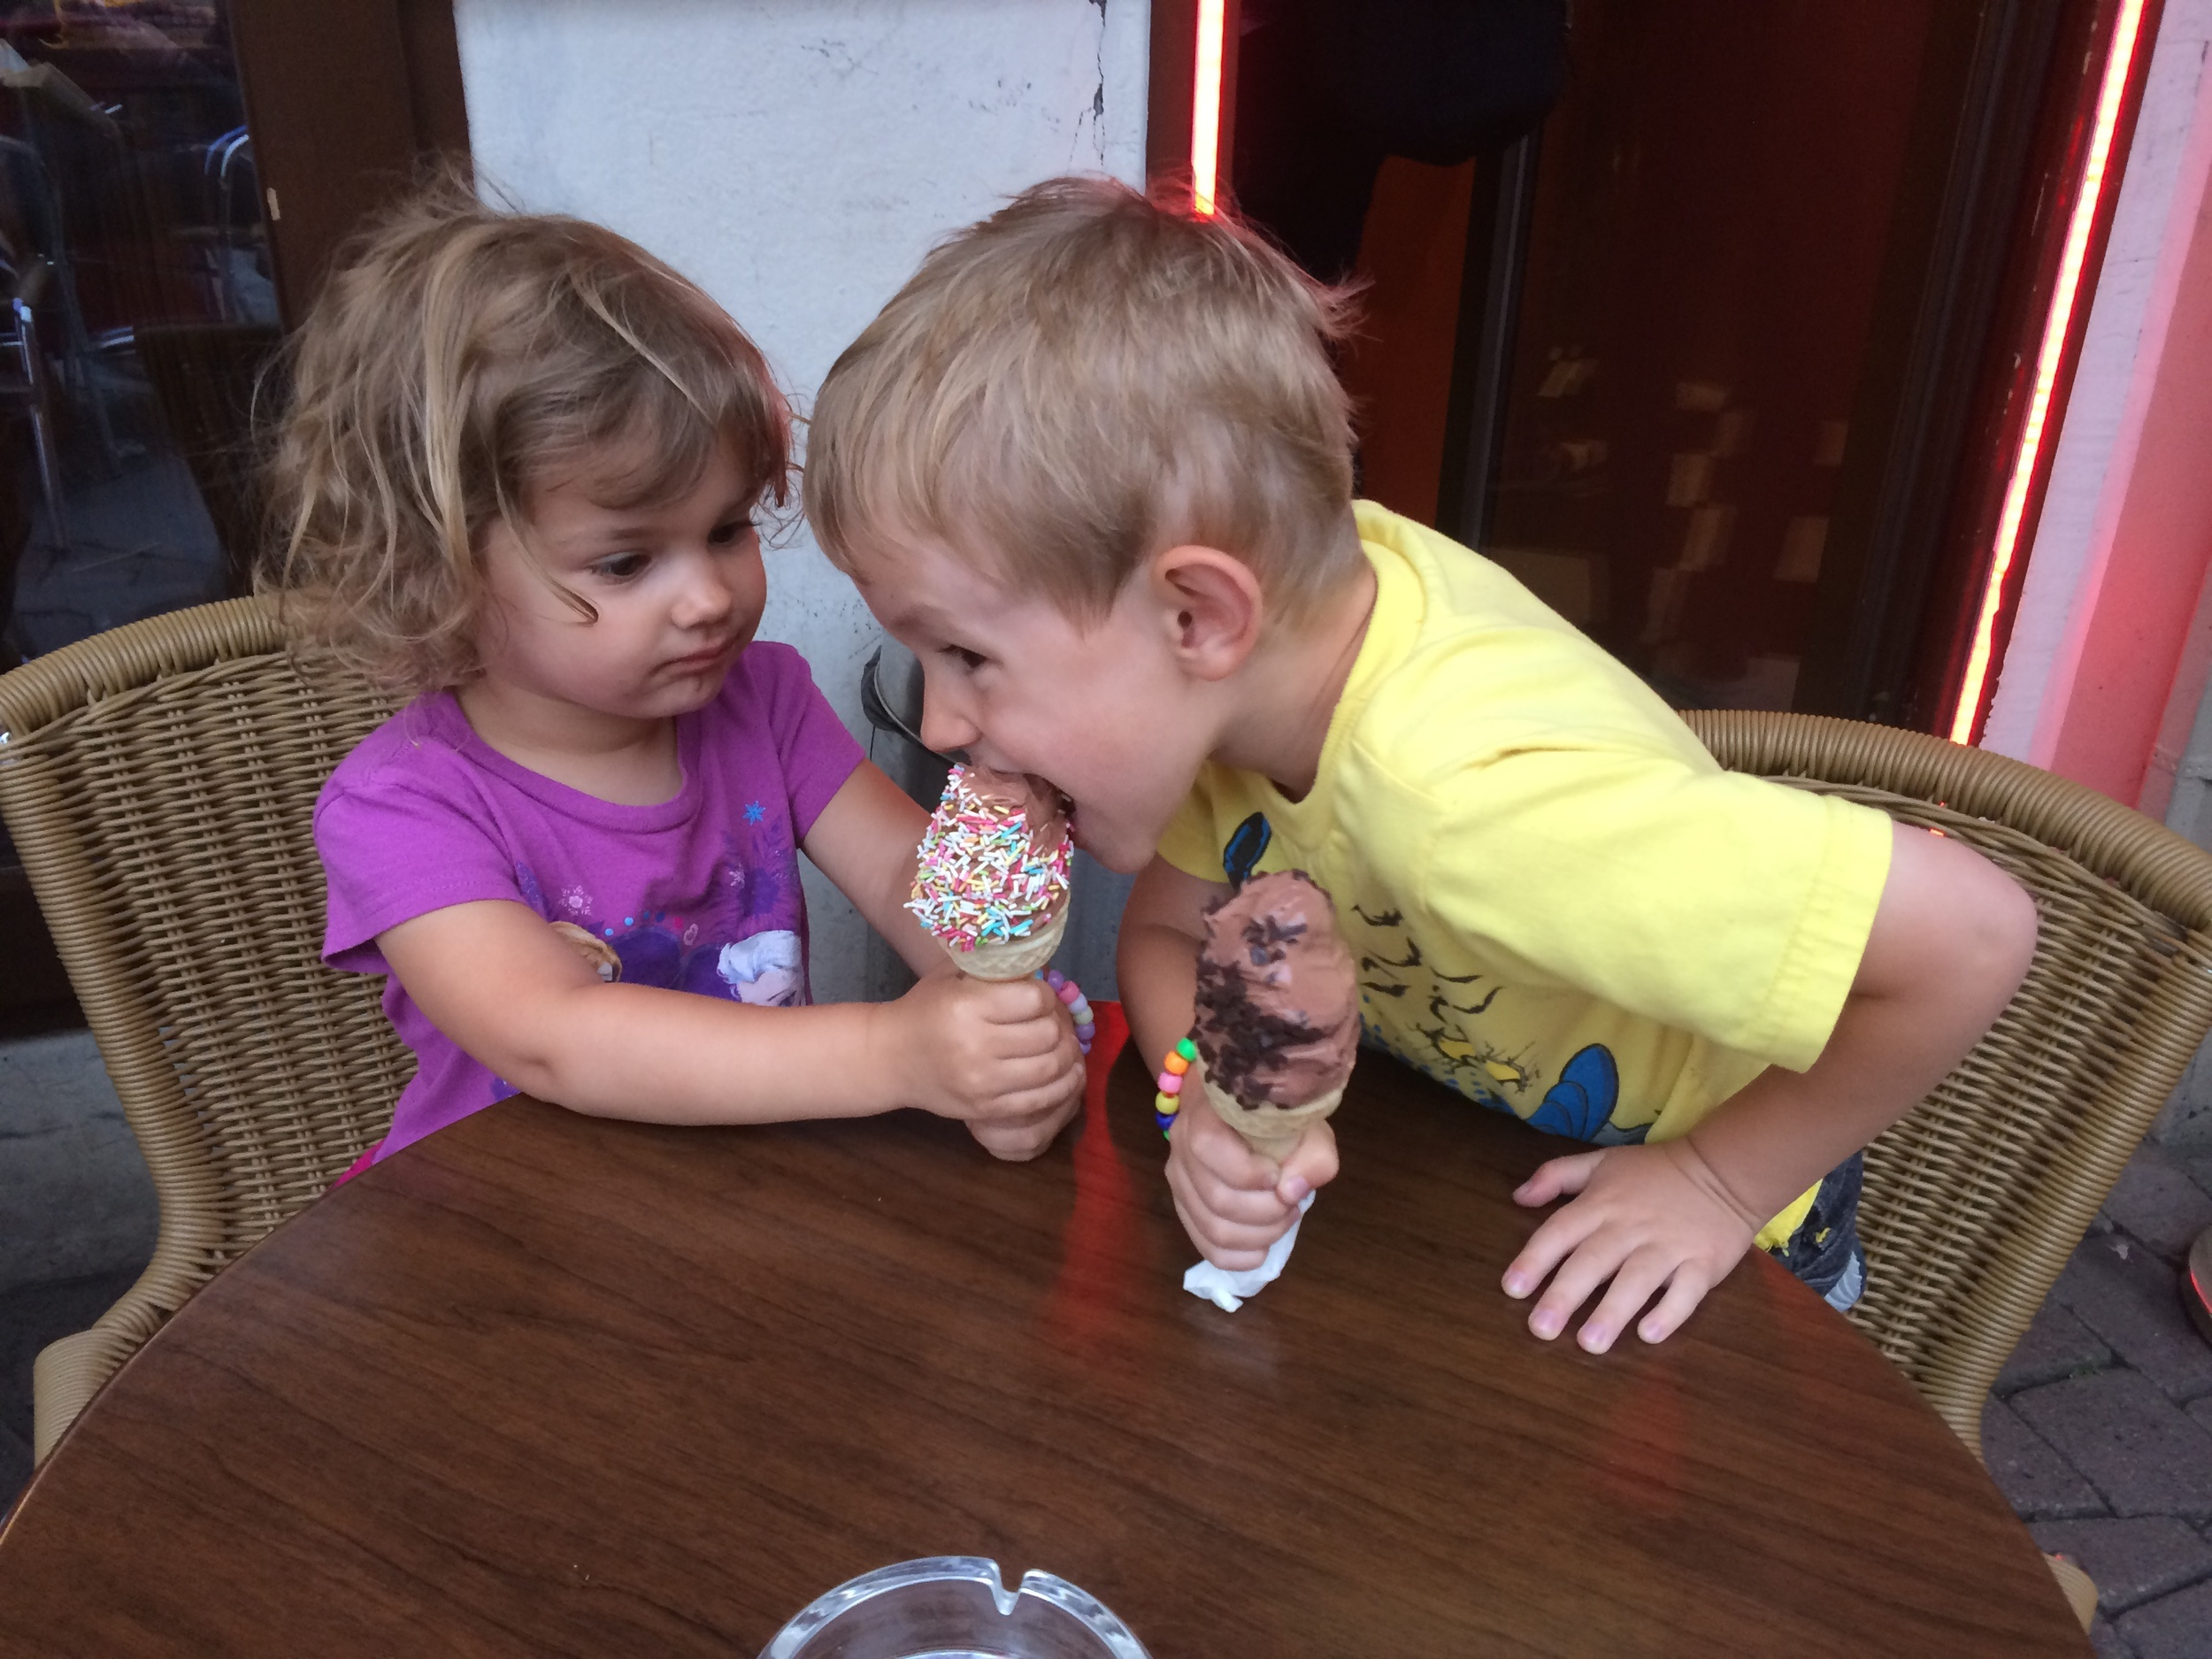 Kian trying Hannah's ice cream since they had different sprinkles